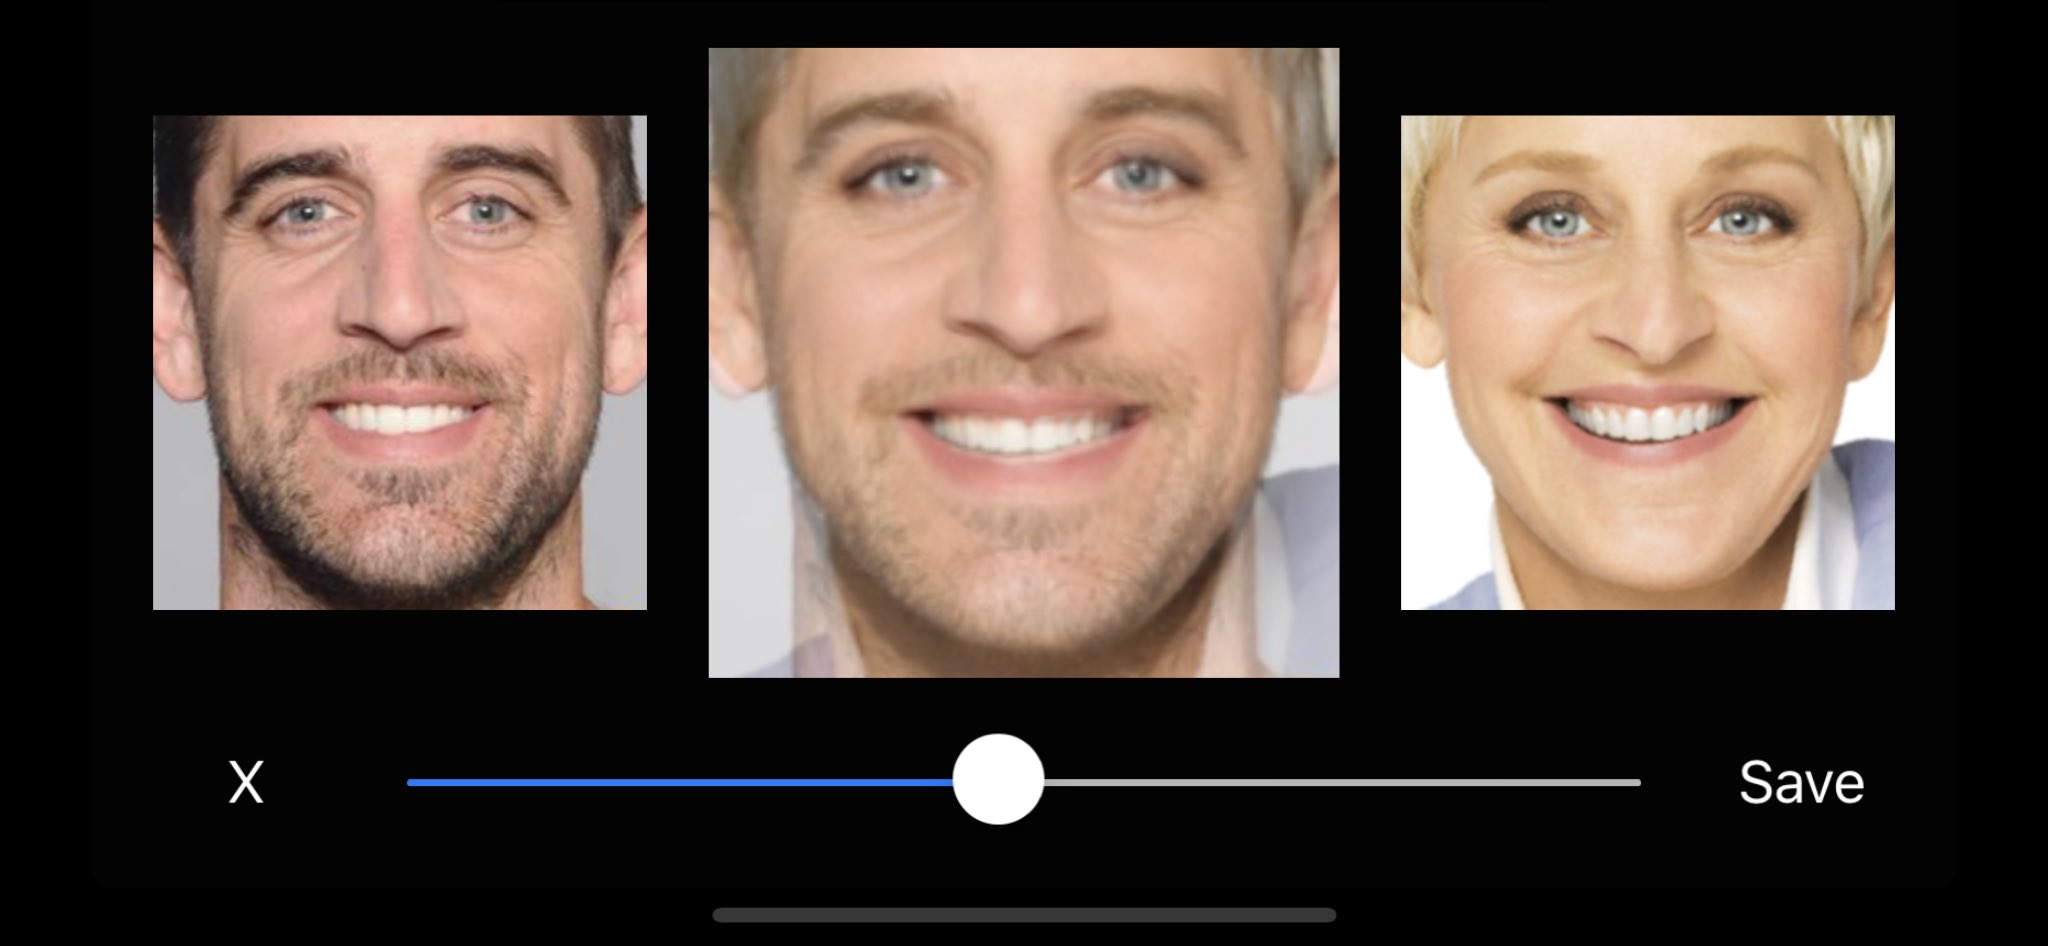 Dcbluestar On Twitter Someone Said Aaron Rodgers Looks Like Ellen Degeneres And Now I Can T Unsee It